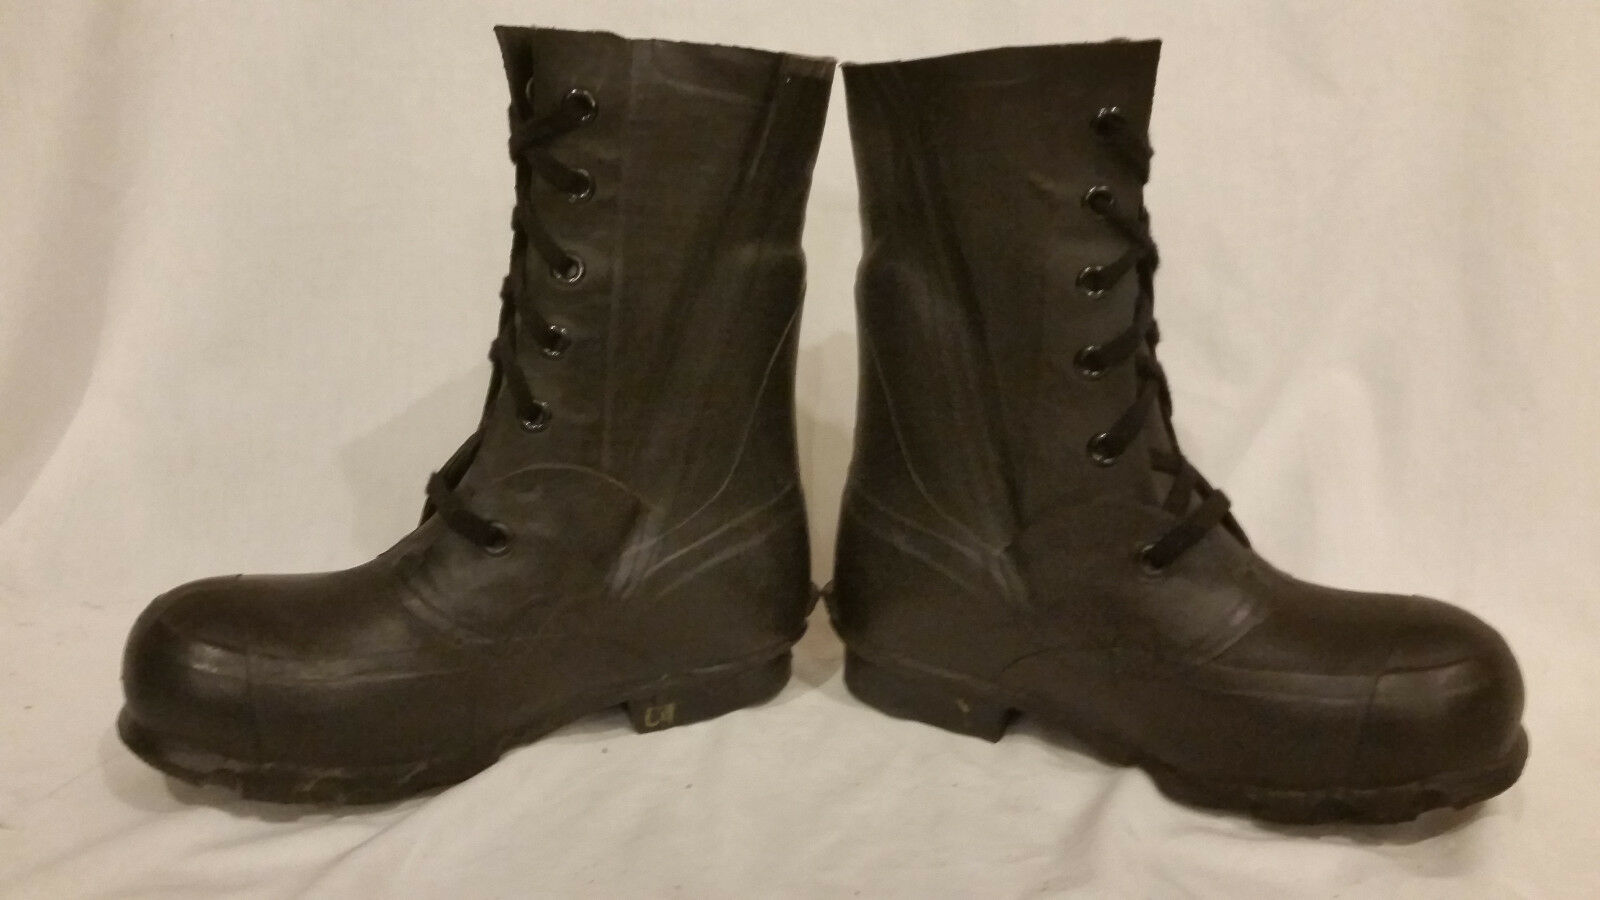 BRISTOLITE QMC EXTREME ARCTIC COLD WEATHER MICKEY MOUSE BOOTS NO VALVE 5R JJ 506